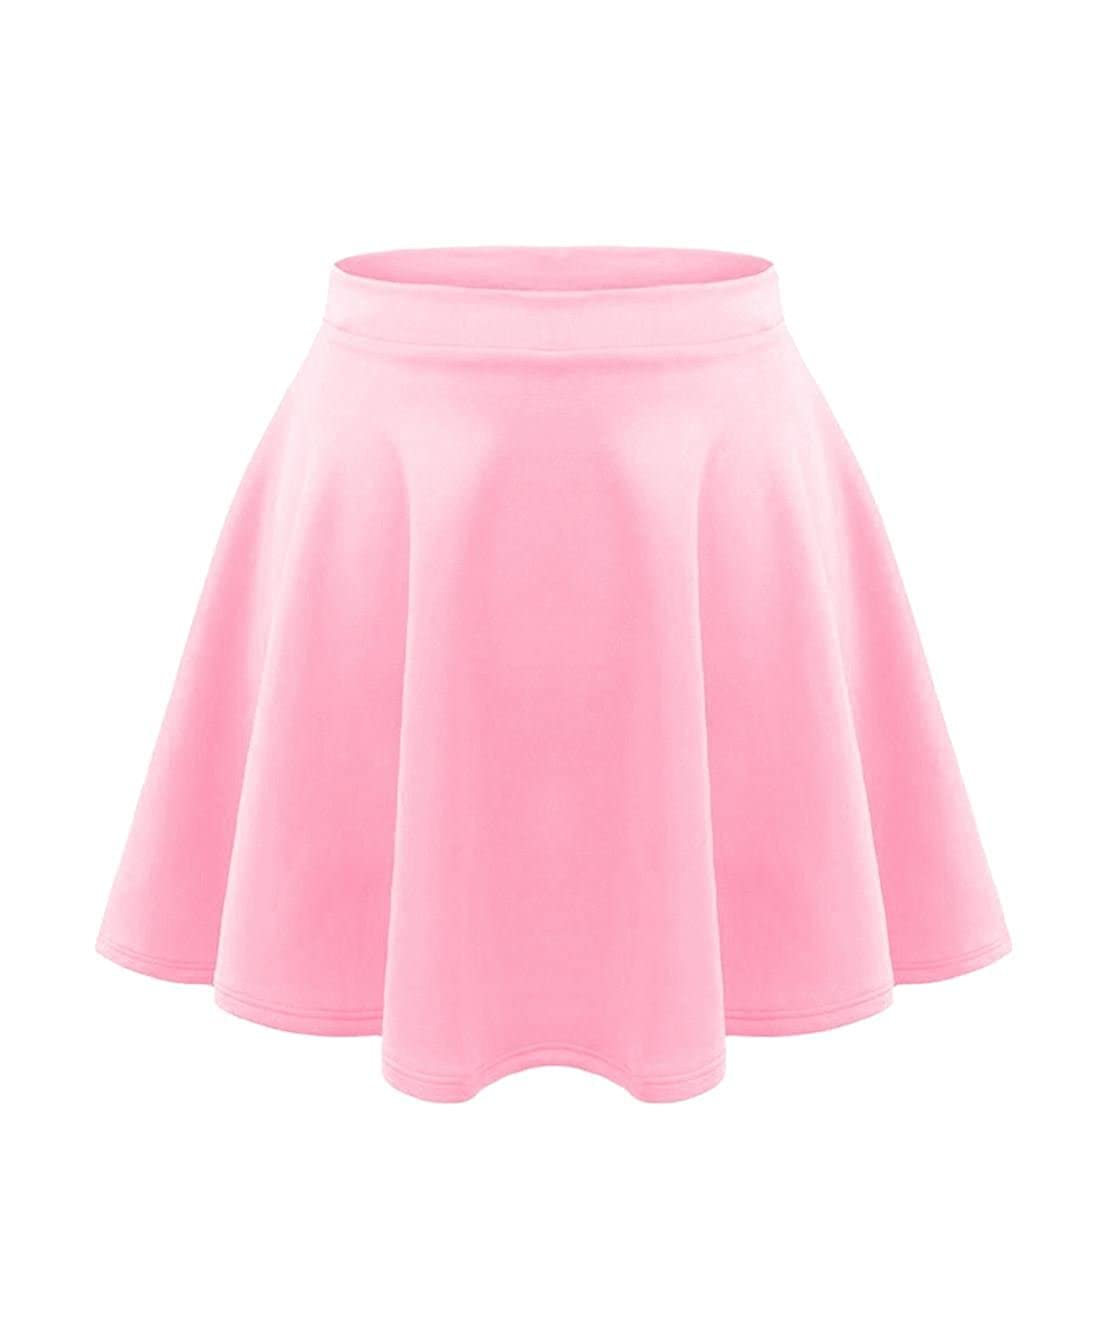 71a6f24a0f Excellent Quality Elasticated High Waisted Stretchy Short Mini Flared Skirt  Length: 15 Inches Approx.